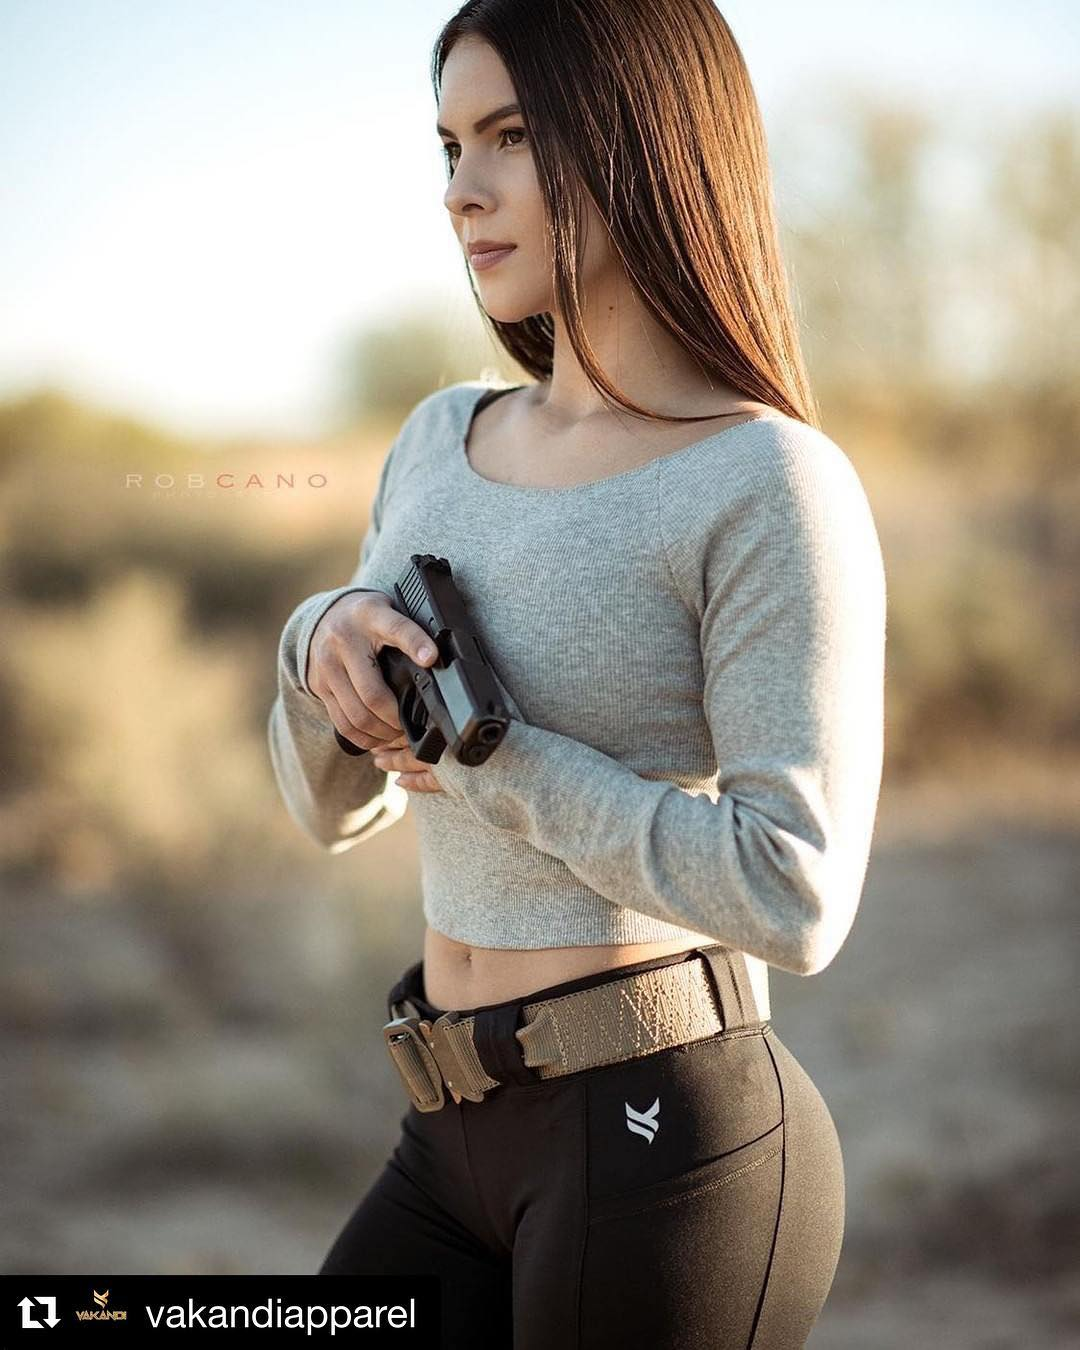 https://i.ibb.co/ZHt5rKk/Military-women-and-guns-Hot-army-girls-Hot-military-girls-with-firearms-Tactical-girls-Sexy-Armed-Gi.jpg